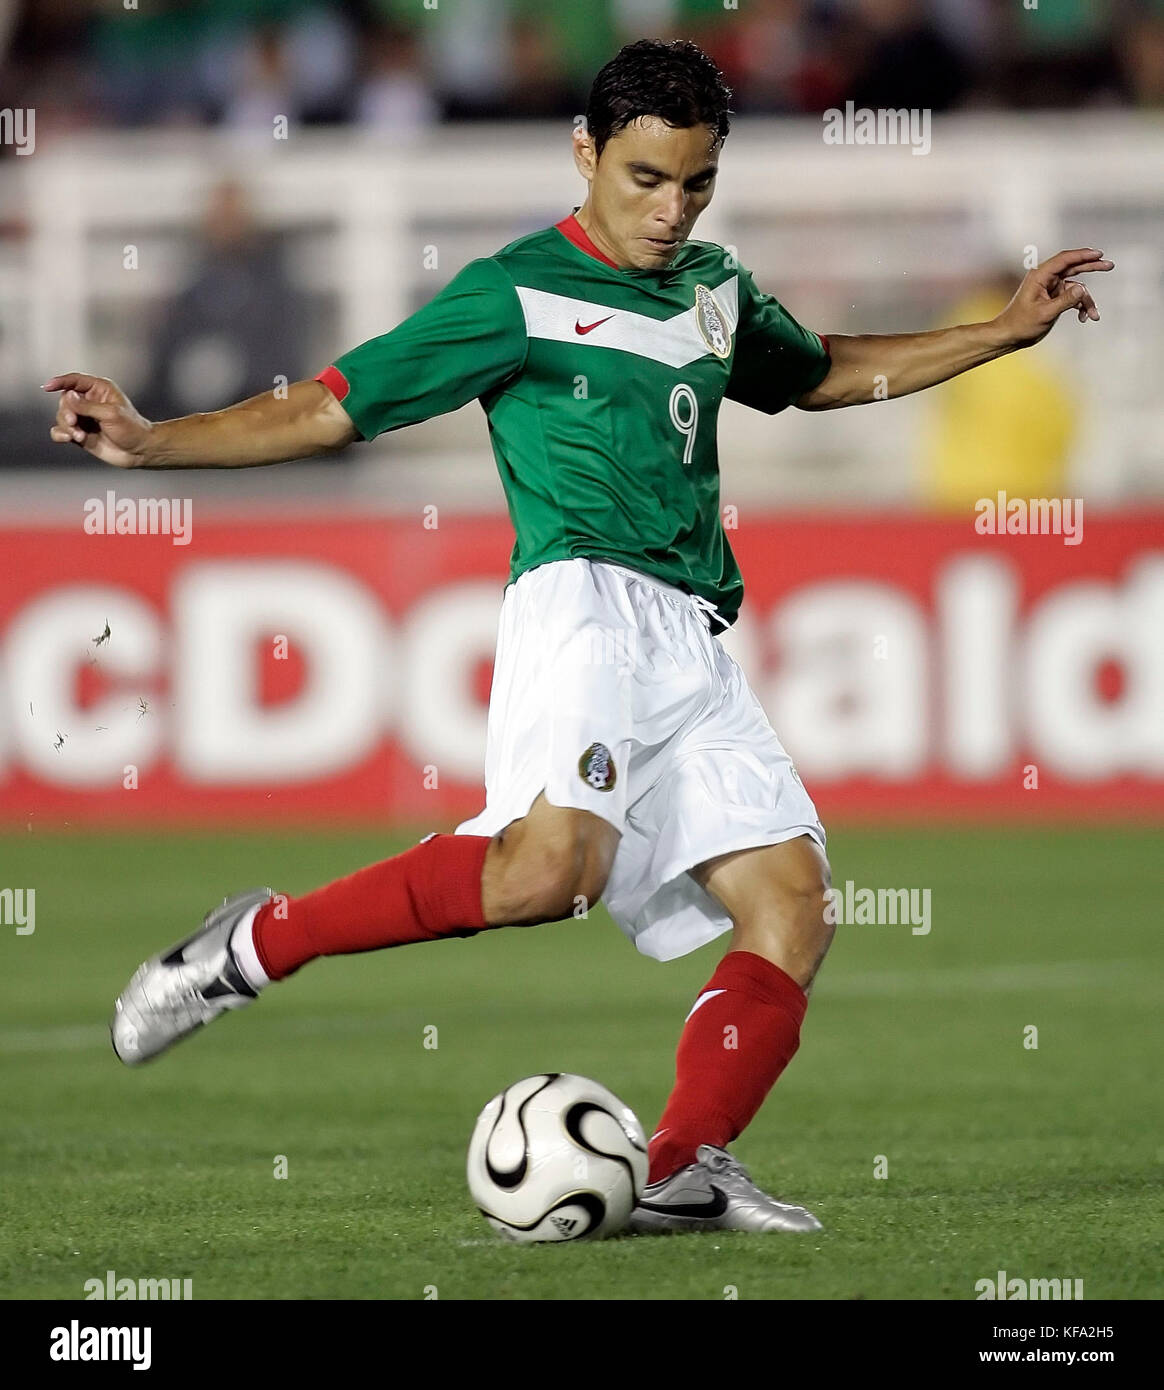 77e917993 Mexico s Omar Bravo scores on a penalty kick against Venezuela in the  second half of a